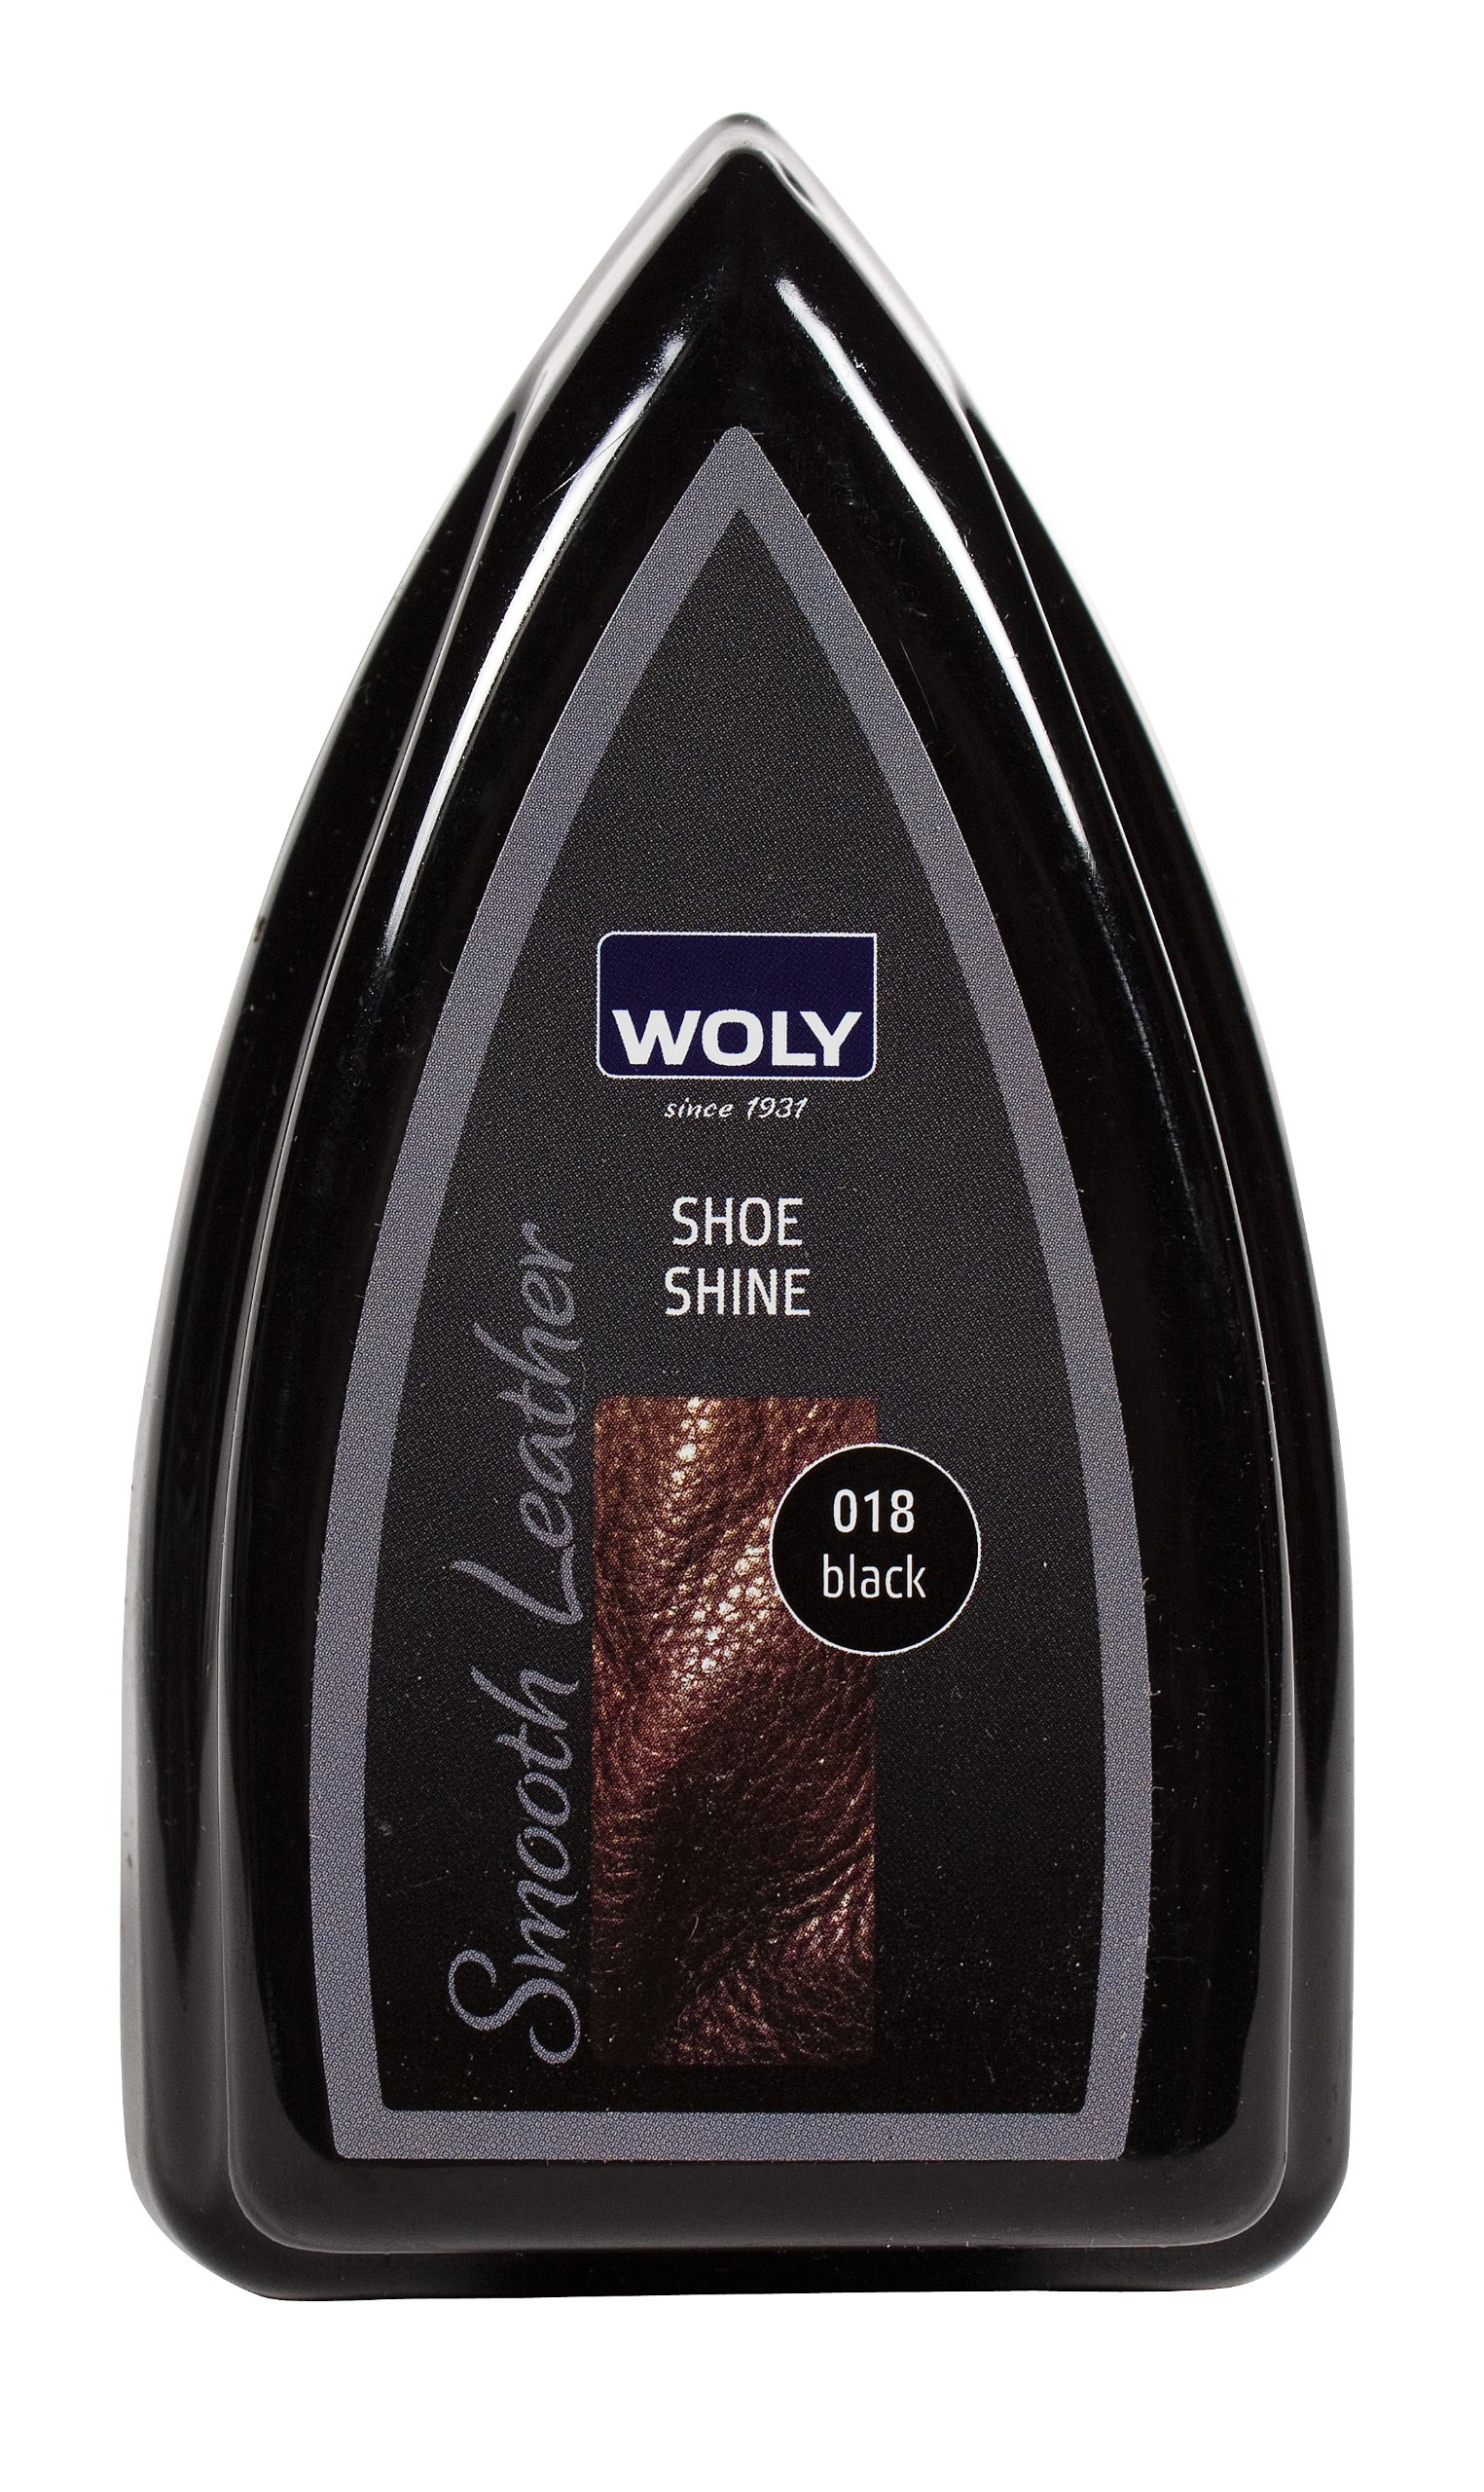 Woly Black Travel Shoe Shine Sponge.Glossy Shine for Designer Shoes. Made in Germany. Small size for travelling. by Woly (Image #1)